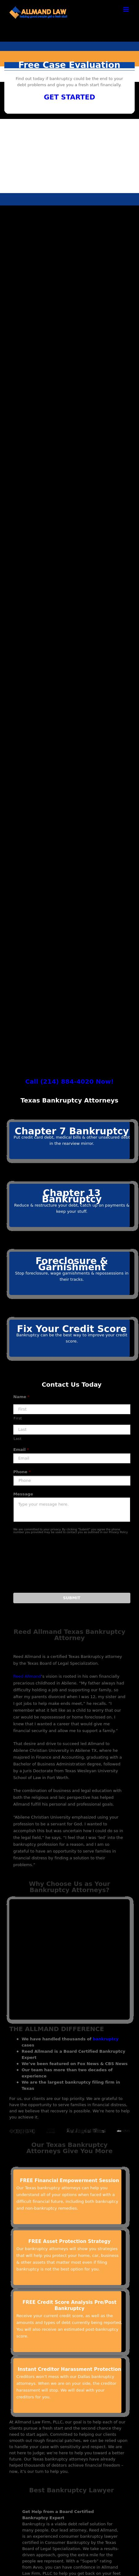 Allmand Law Firm, PLLC - Dallas TX Lawyers